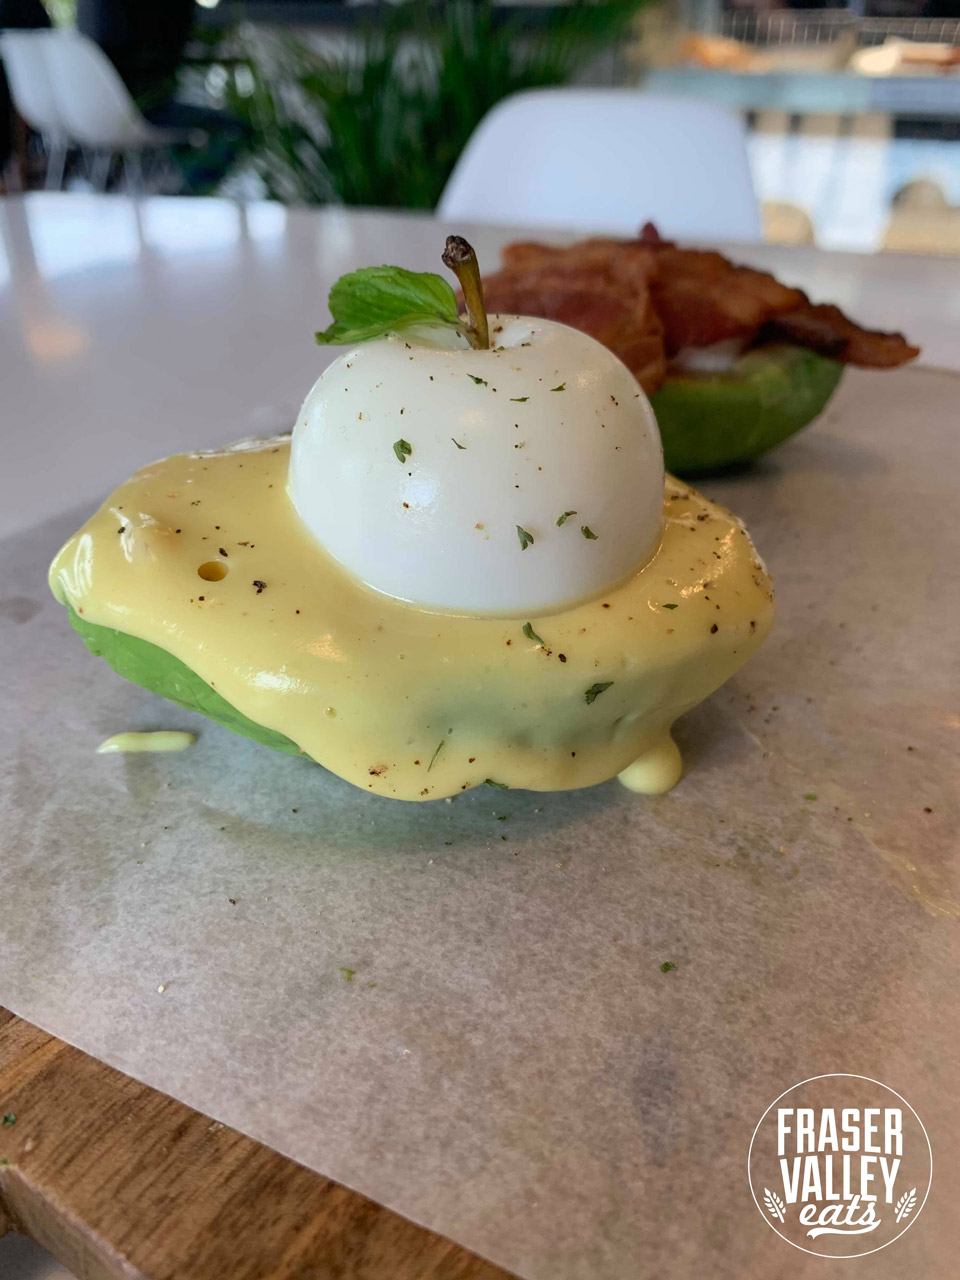 Avo Addict menu item, an egg in the shape of an apple and topped with a real apple stem sitting in an avocado half-shell covered in hollandaise sauce with a cream cheese-filled and bacon-covered avocado half in the background